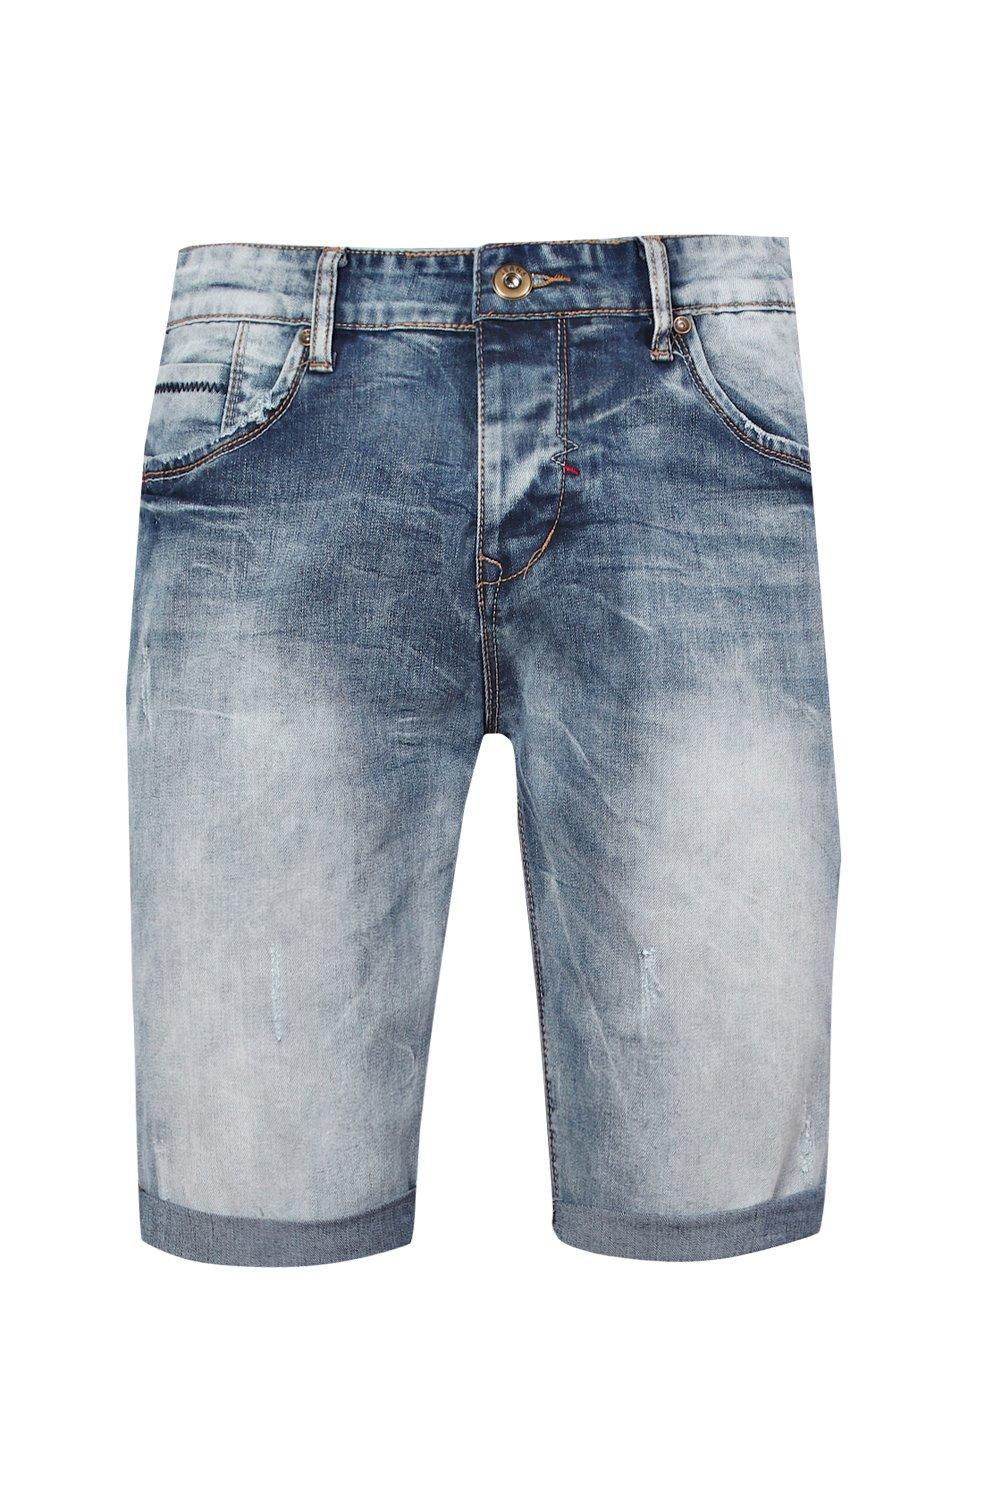 boohooMAN wash blue Skinny Fit Denim Shorts With Turn Up